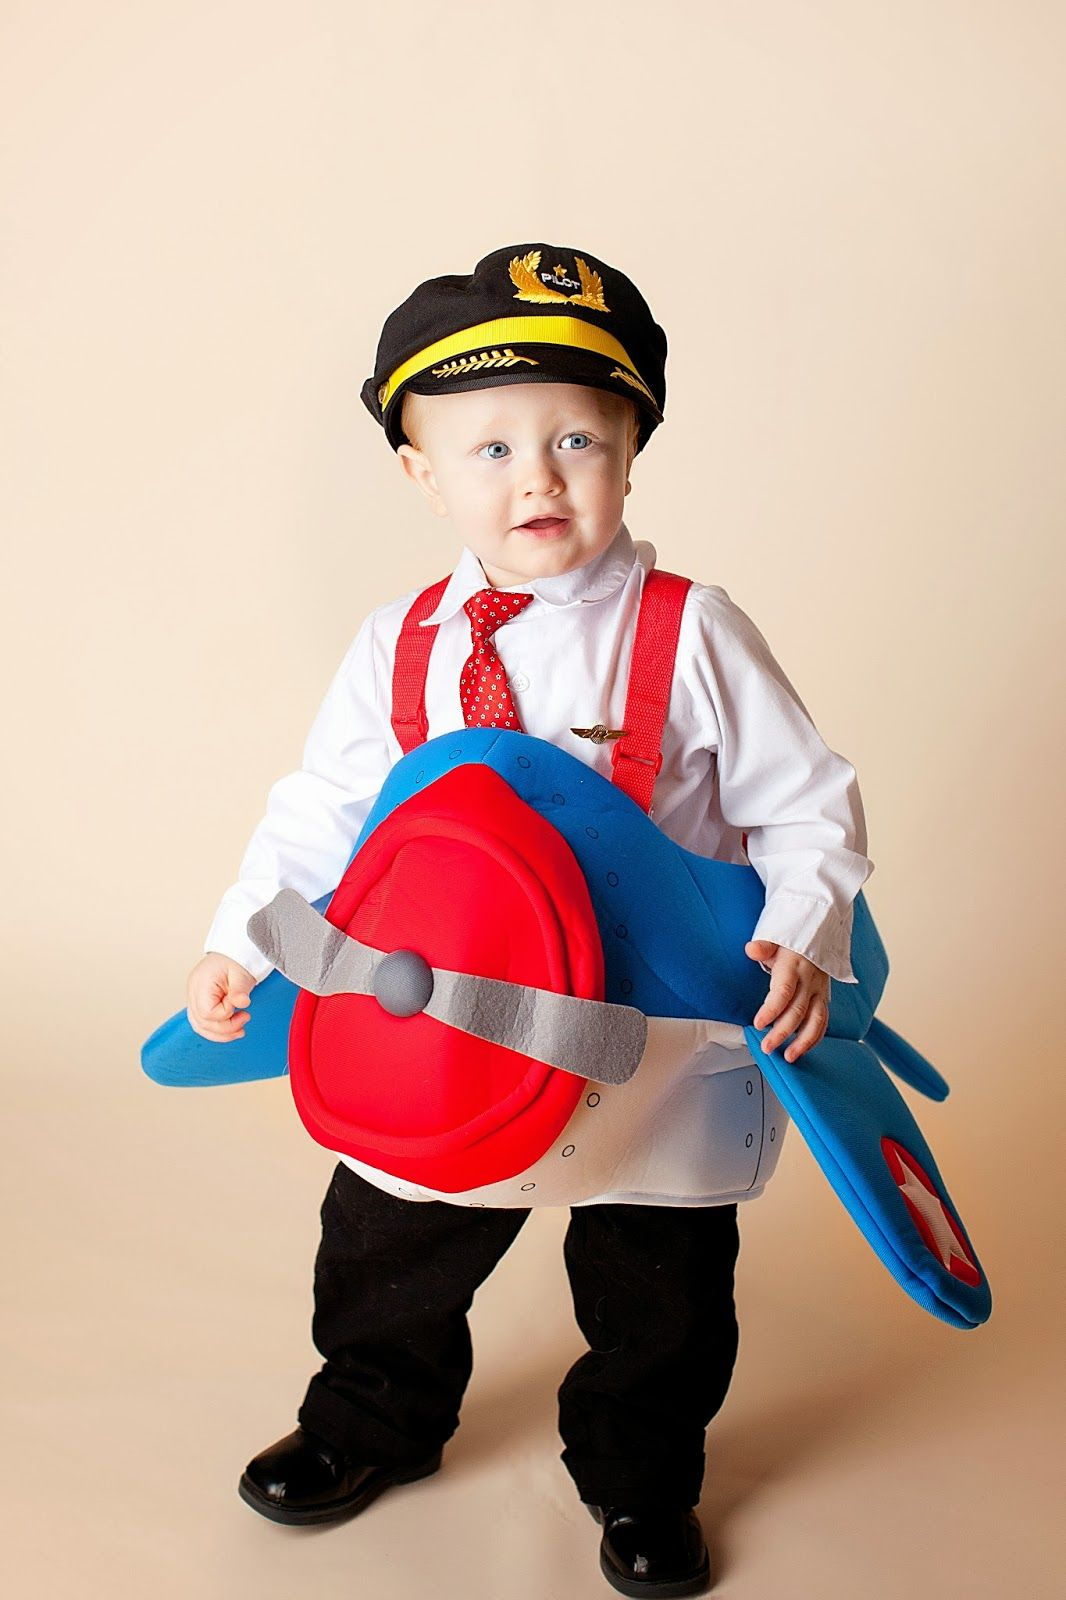 airplane costume toddler - Google Search | Boys birthday party | Pinterest | Airplane costume Costumes and Halloween costumes  sc 1 st  Pinterest & airplane costume toddler - Google Search | Boys birthday party ...